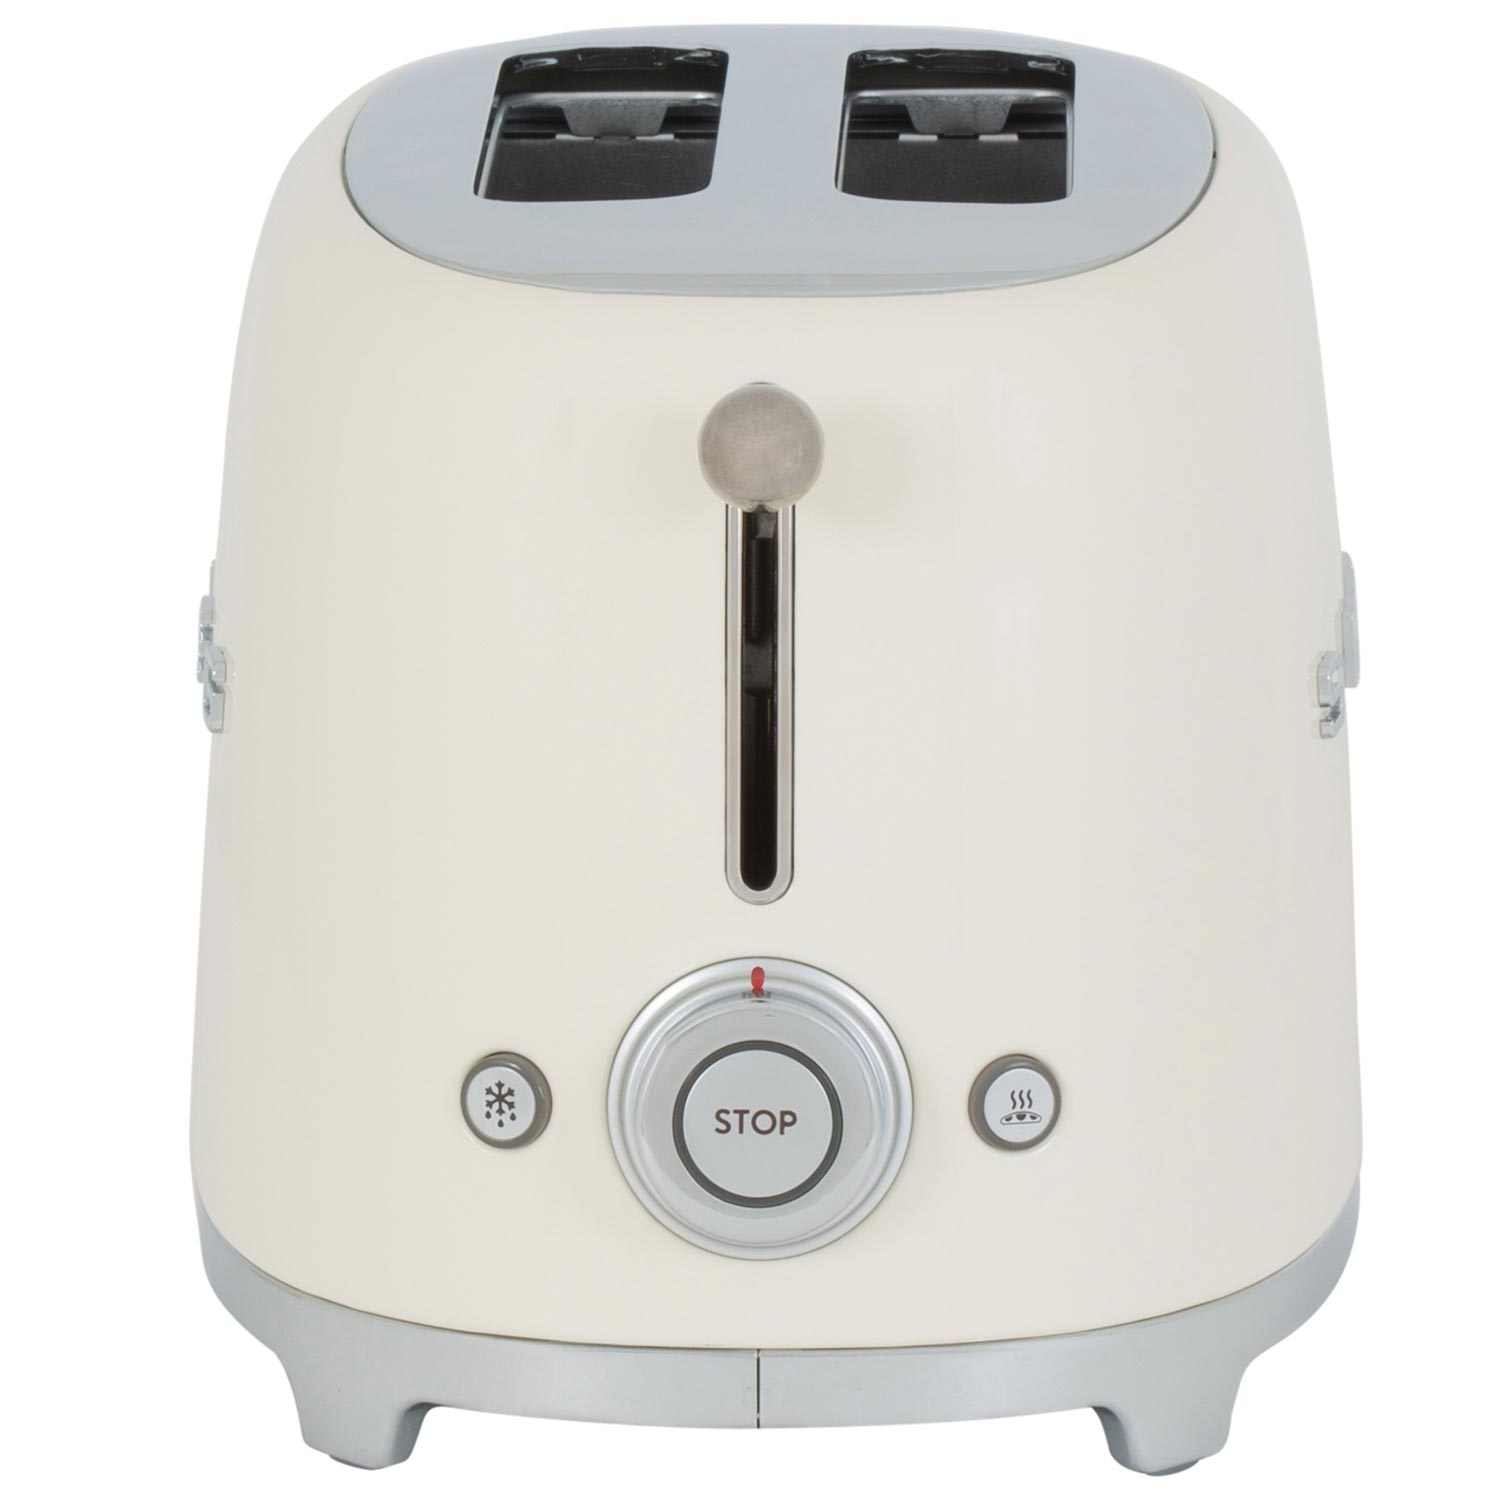 Smeg 2 Slice Toaster - Cream - 6